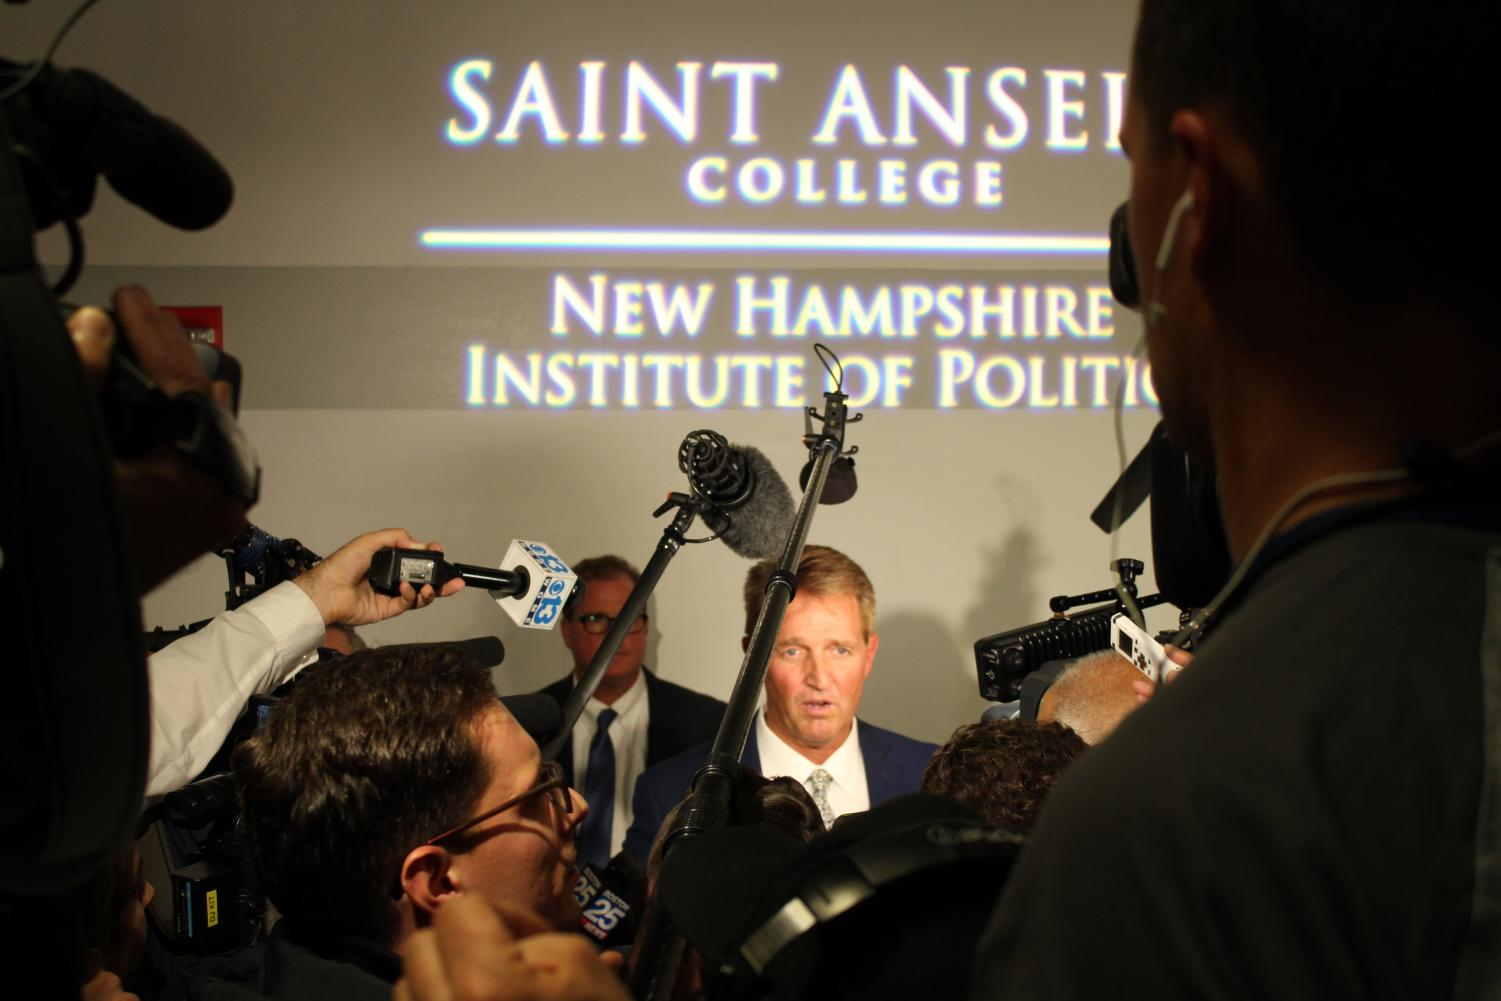 Flake's involvement in the controversial appointment of Brett Kavanaugh to the Supreme Court attracted a big media presence when he spoke at Saint Anselm Oct. 1.